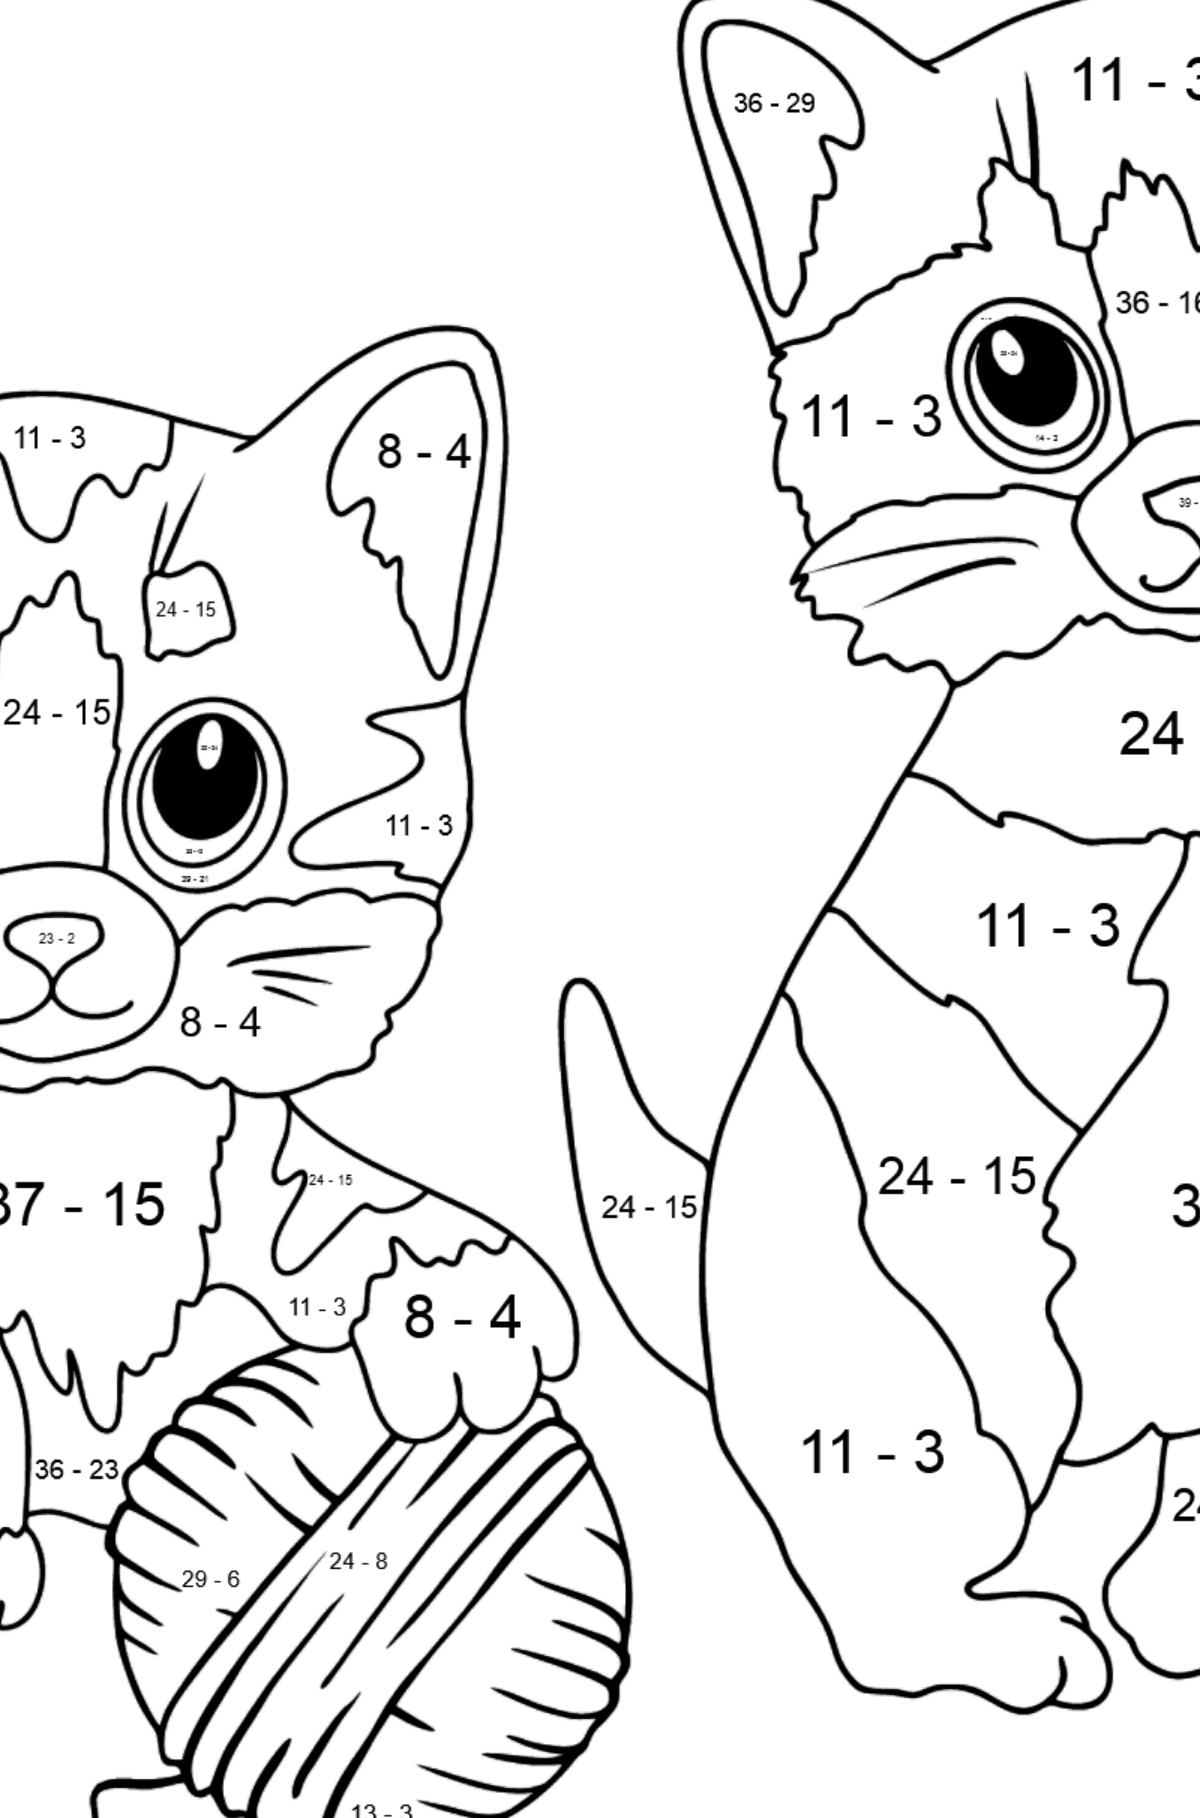 Coloring Page - Kitty Cat - Math Coloring - Subtraction for Kids